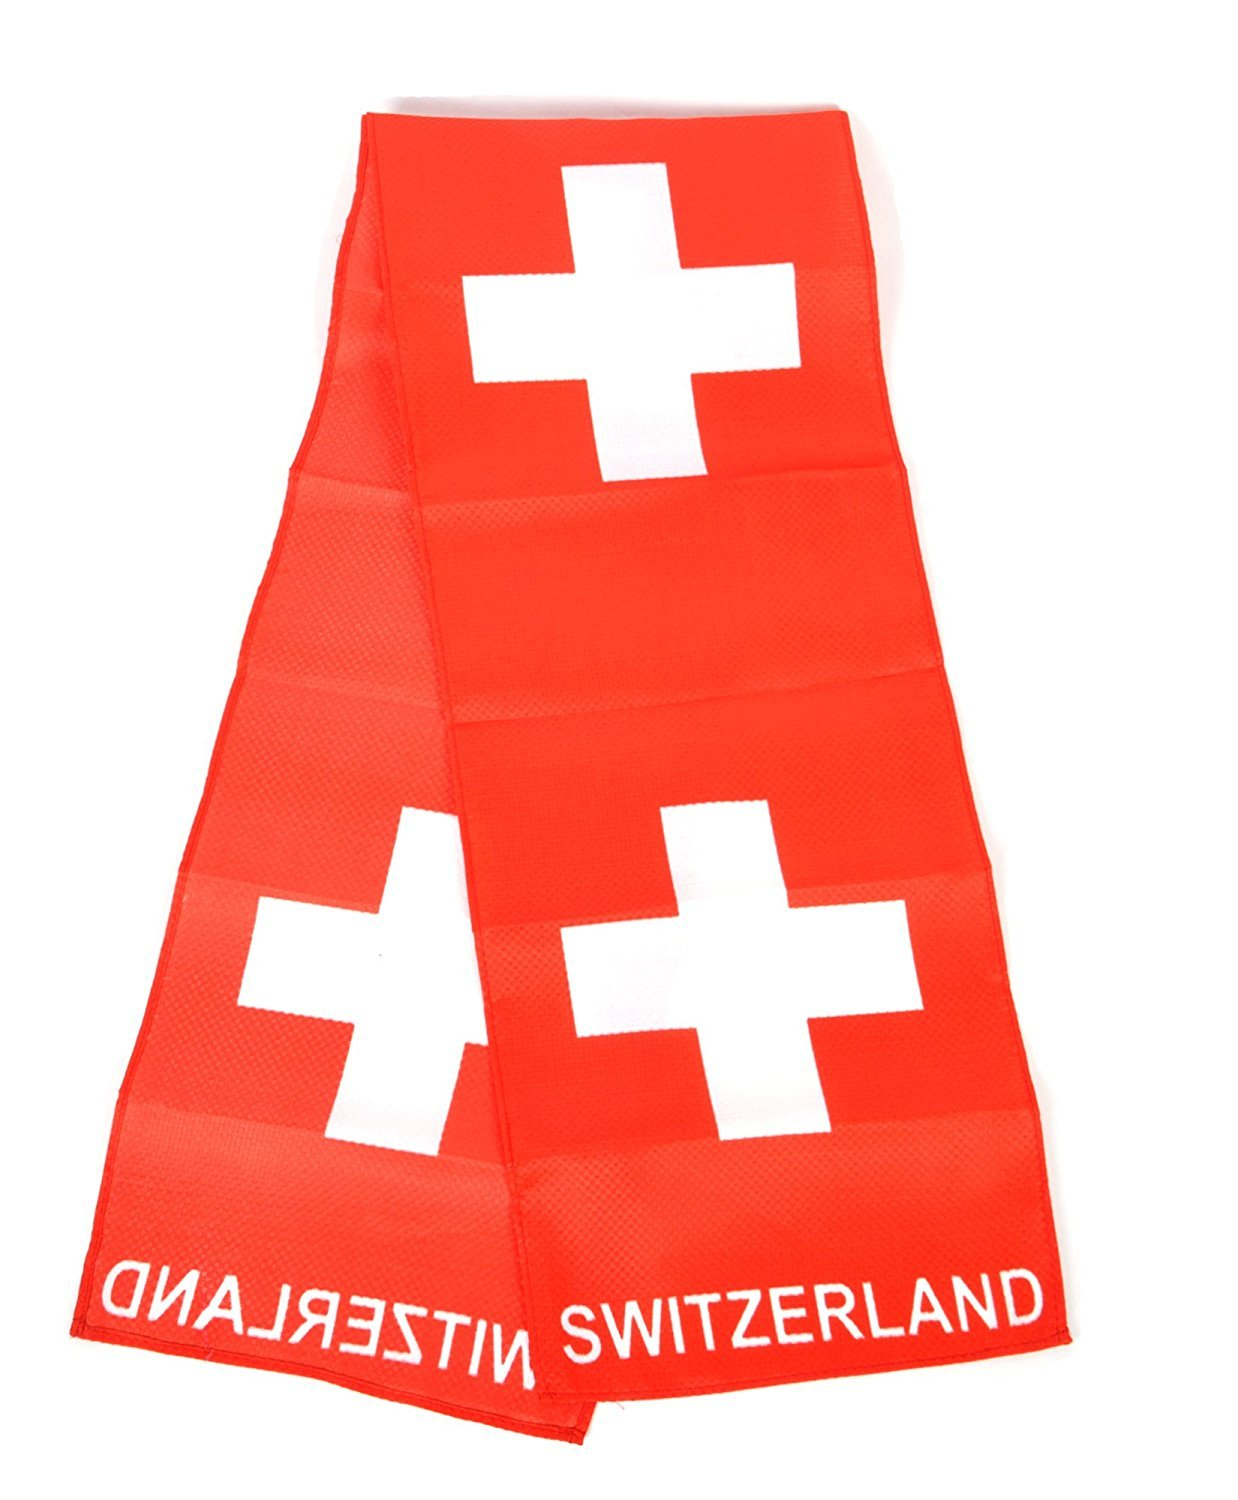 National Pride World Cup Scarves-3 Pieces Pack (Switzerland- 3 Pieces)